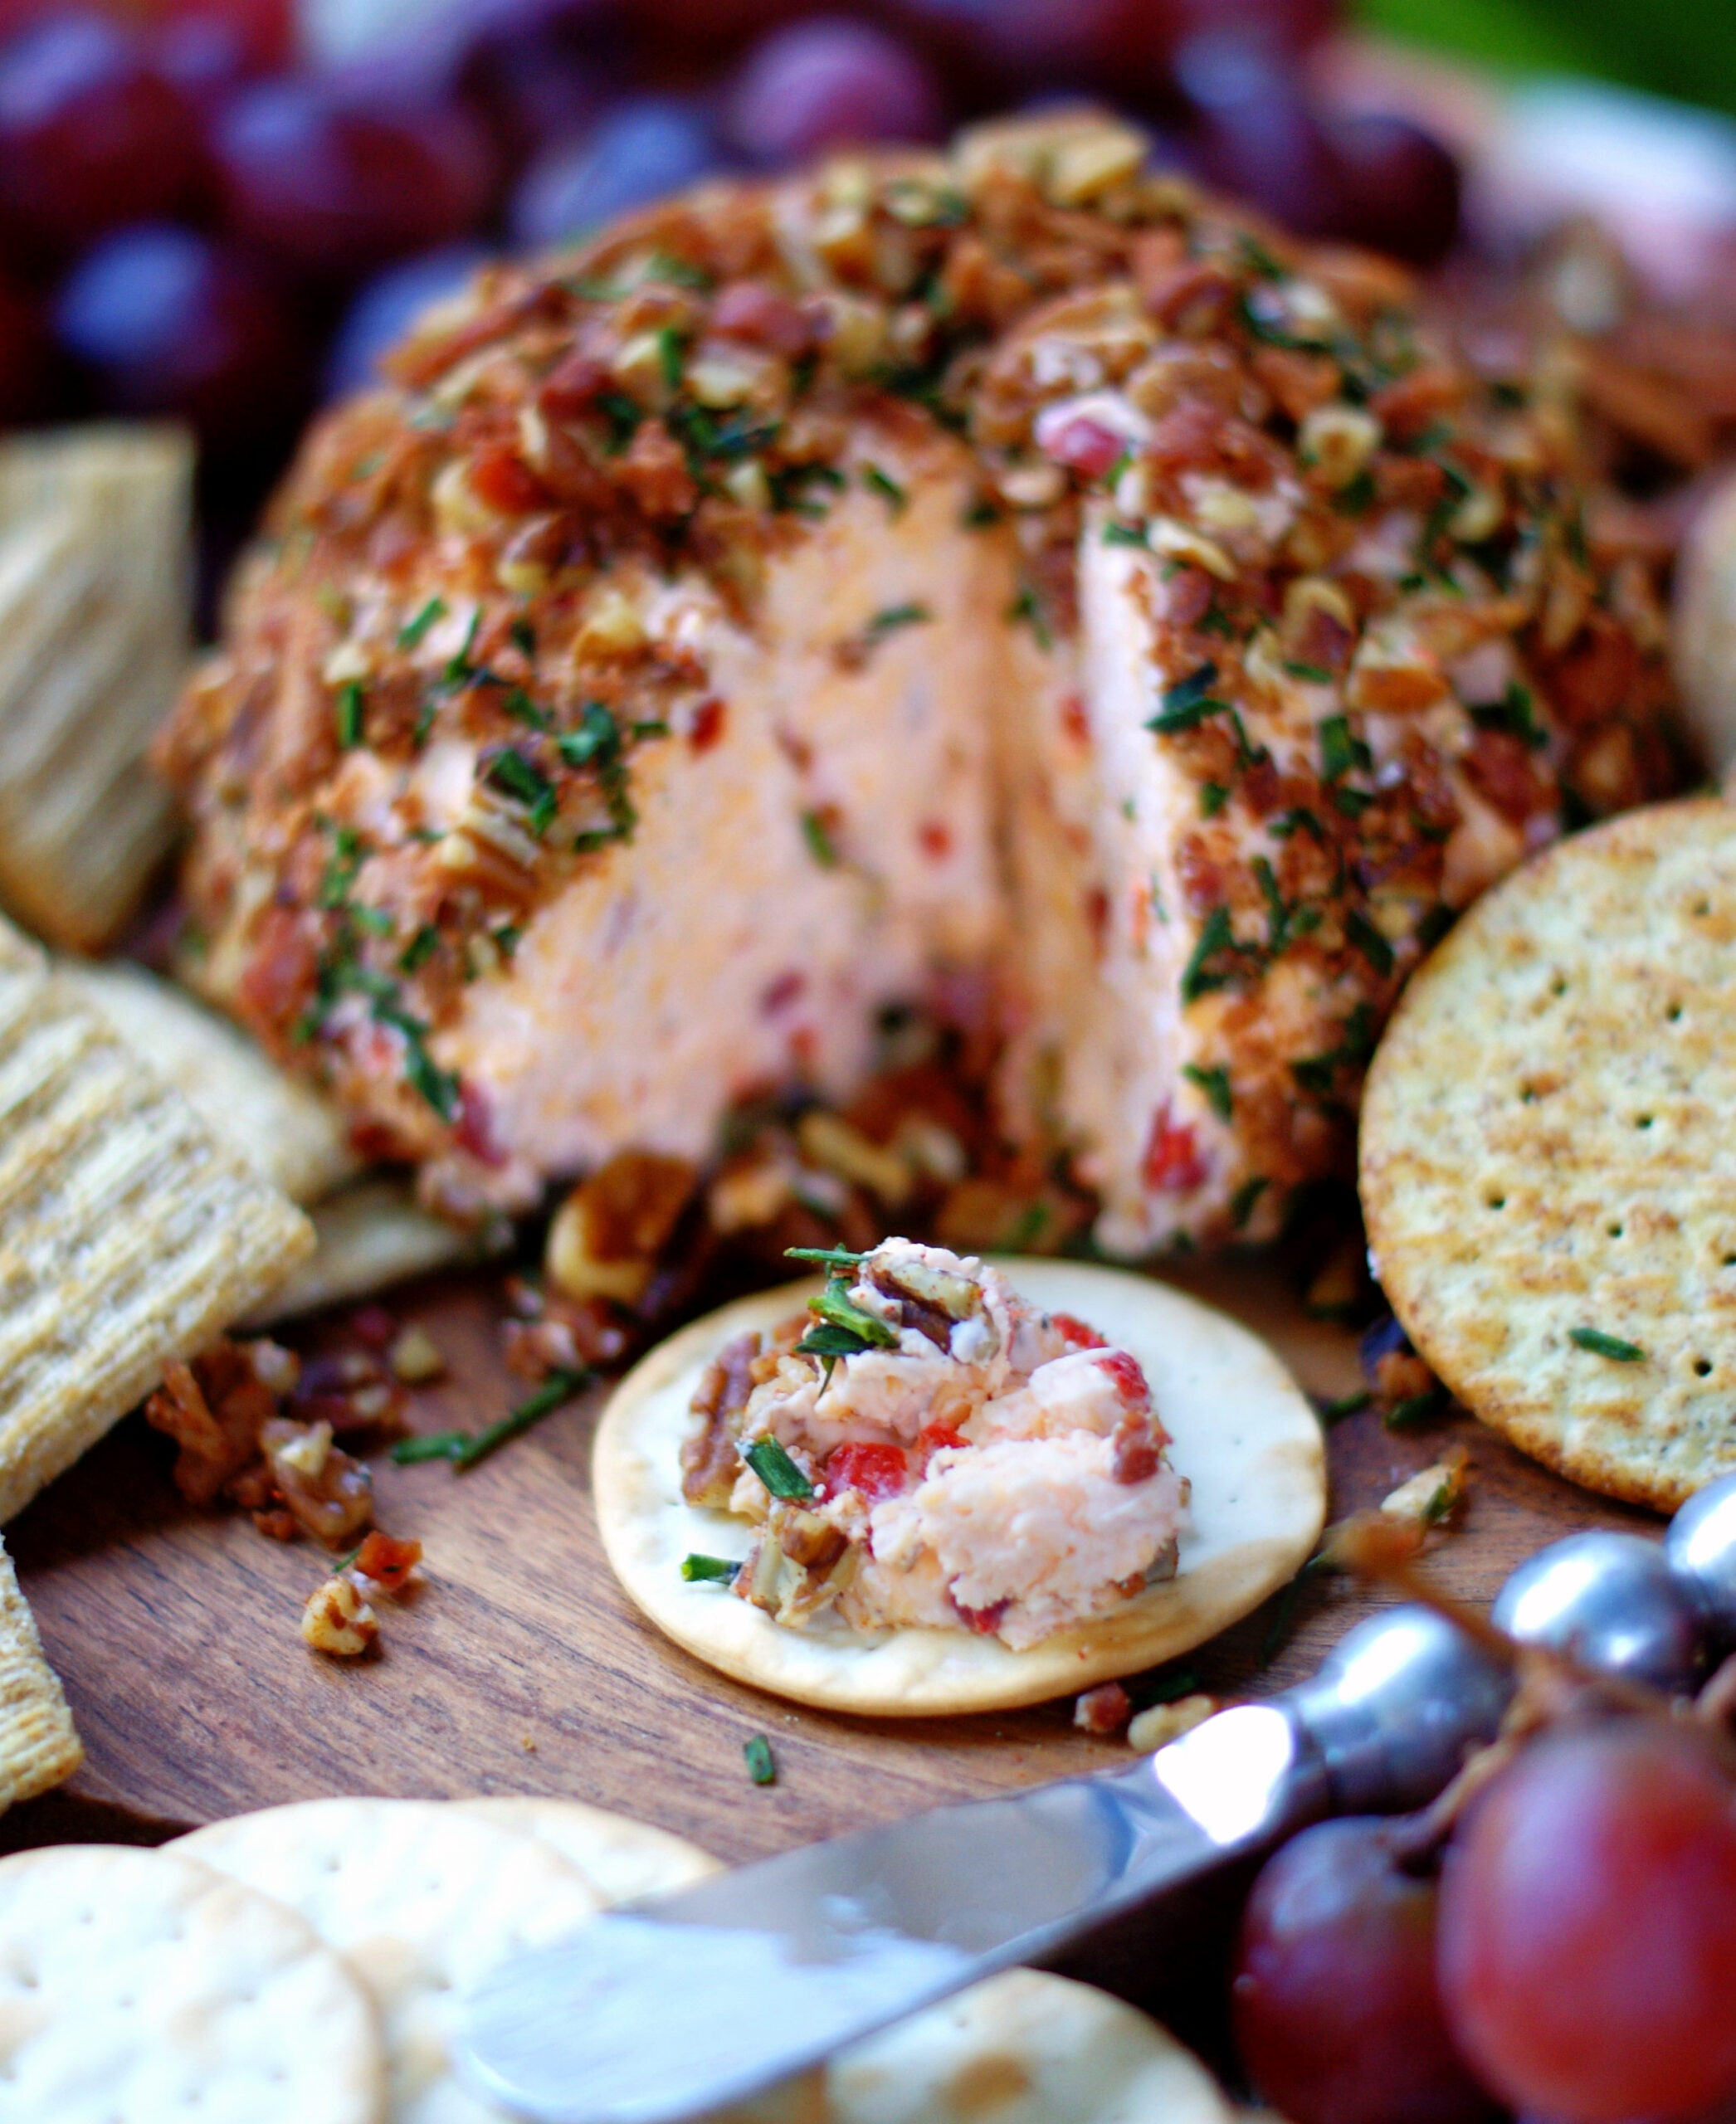 Pimento Cheese Ball made with cream cheese and served on a cracker.